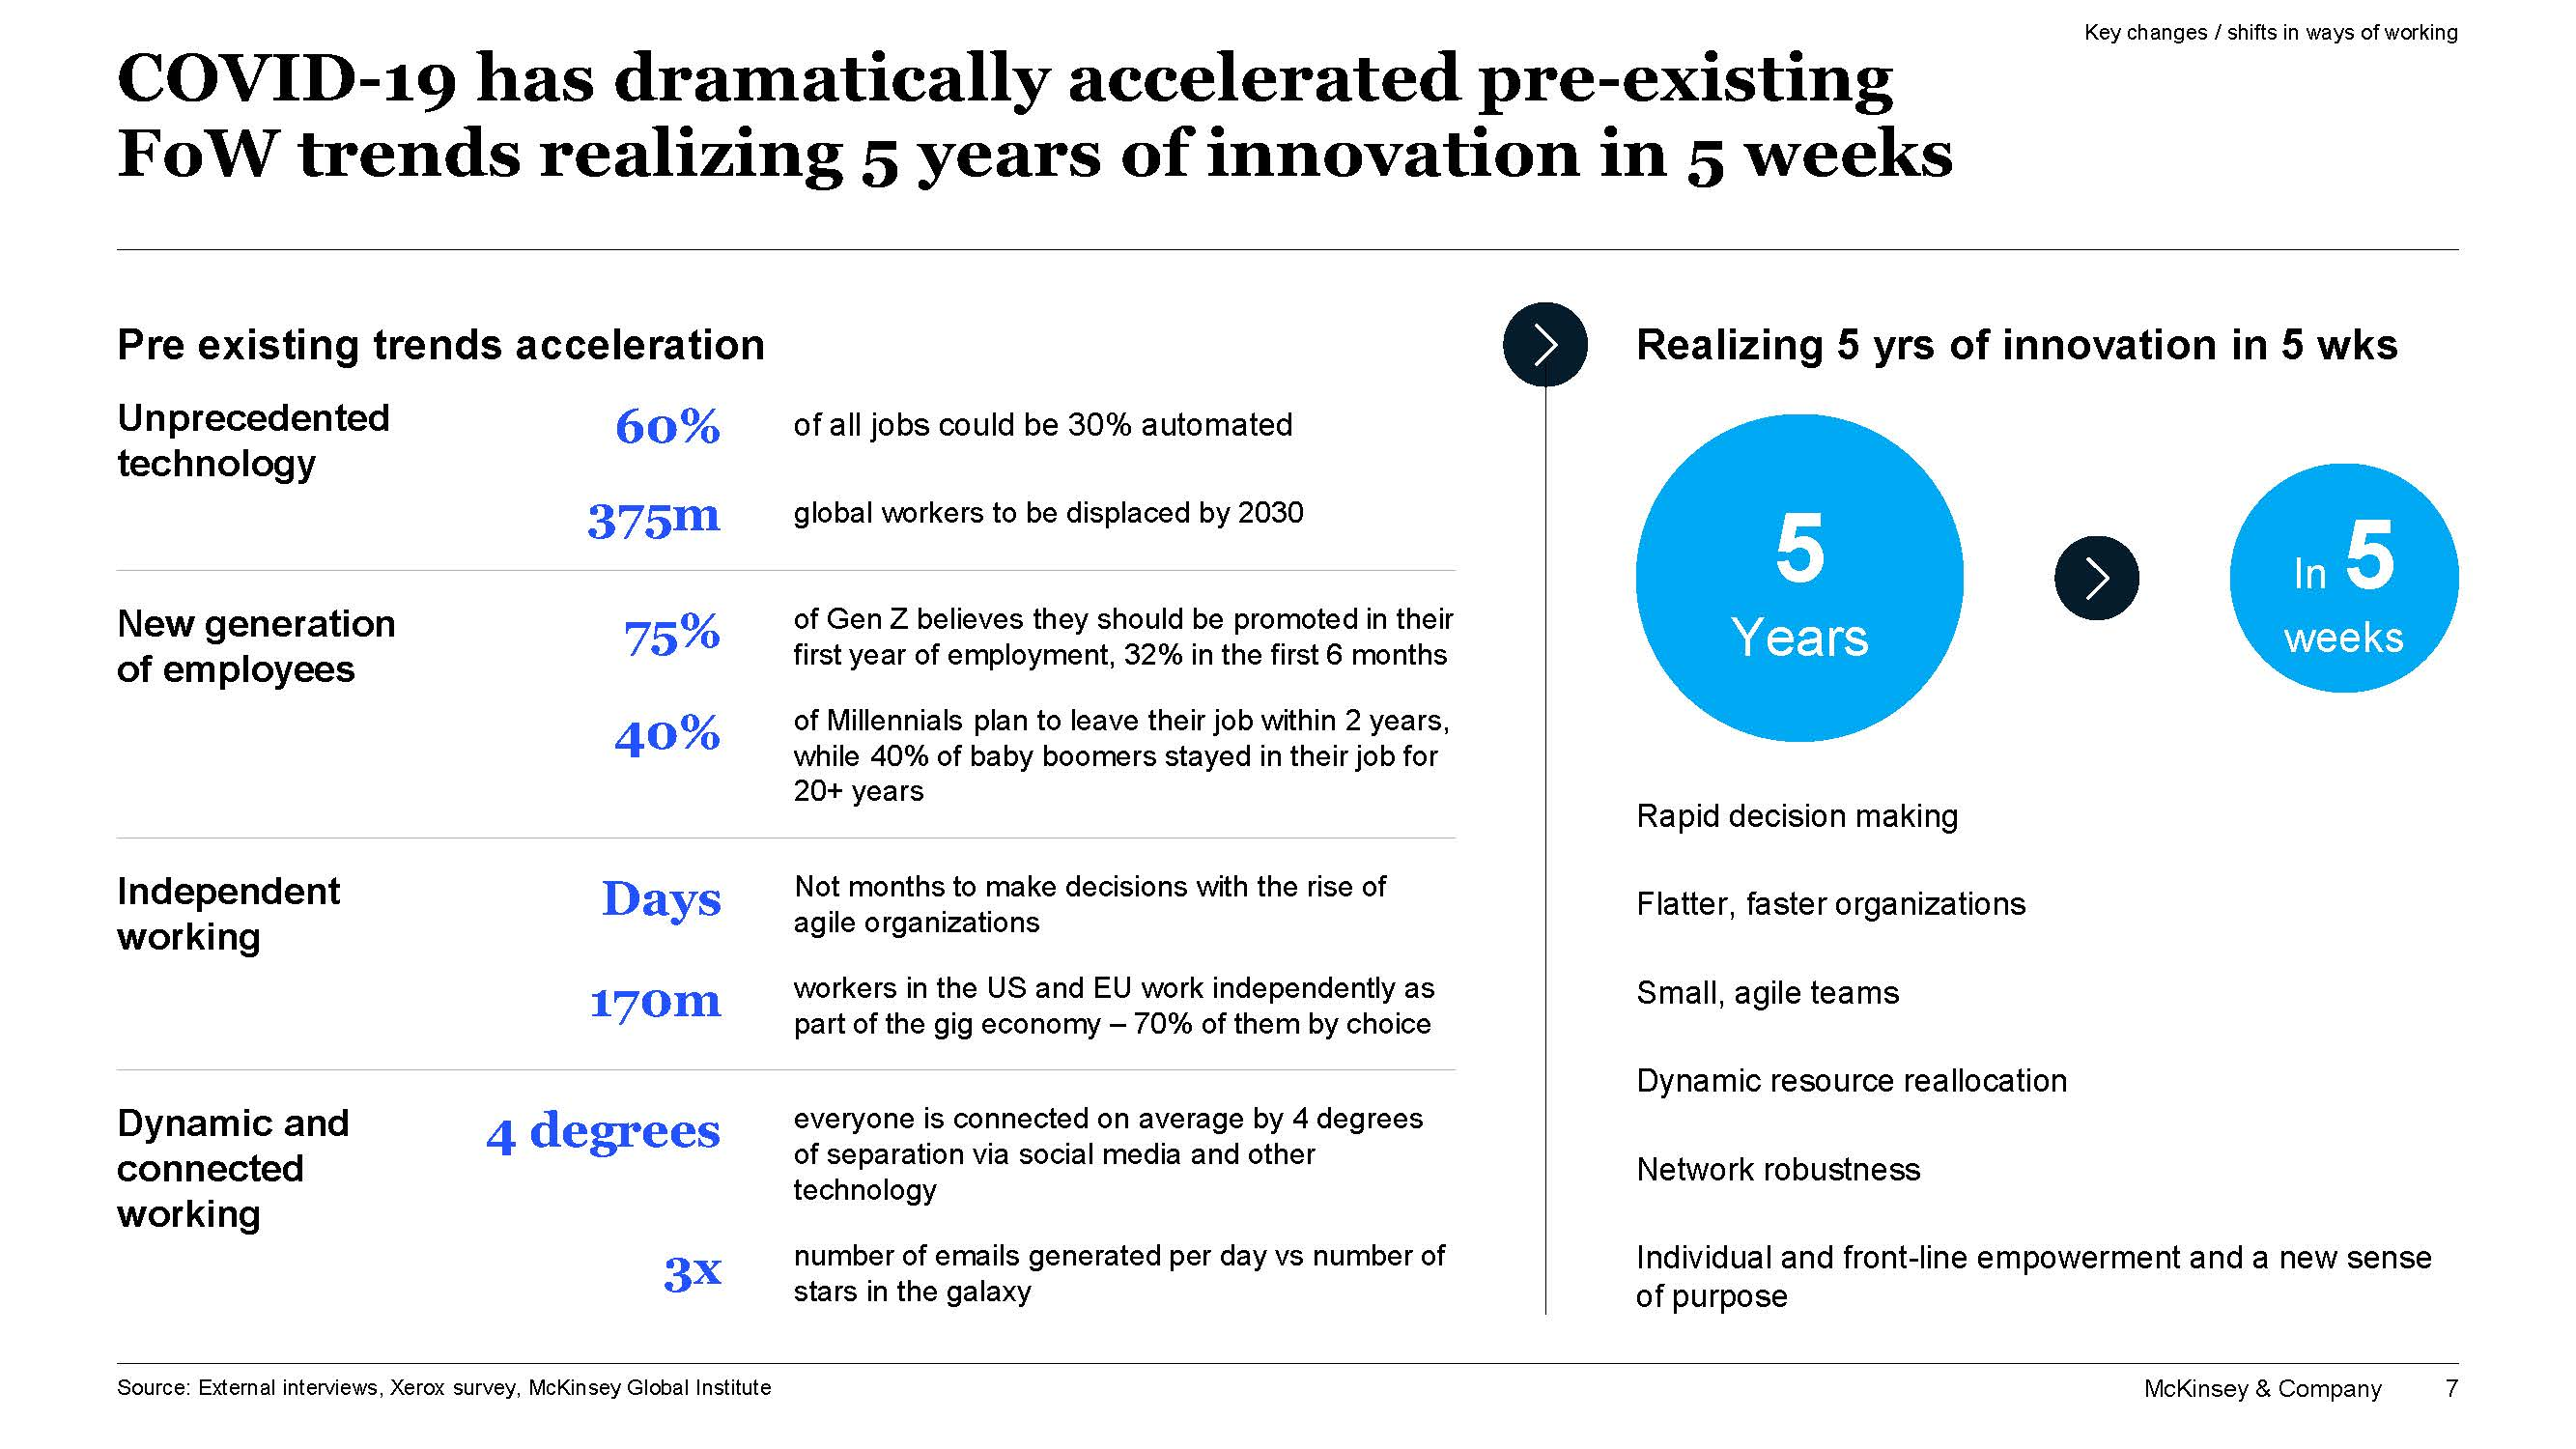 McKinsey COVID-19 accelerated 5 years of innovation in 5 weeks chart